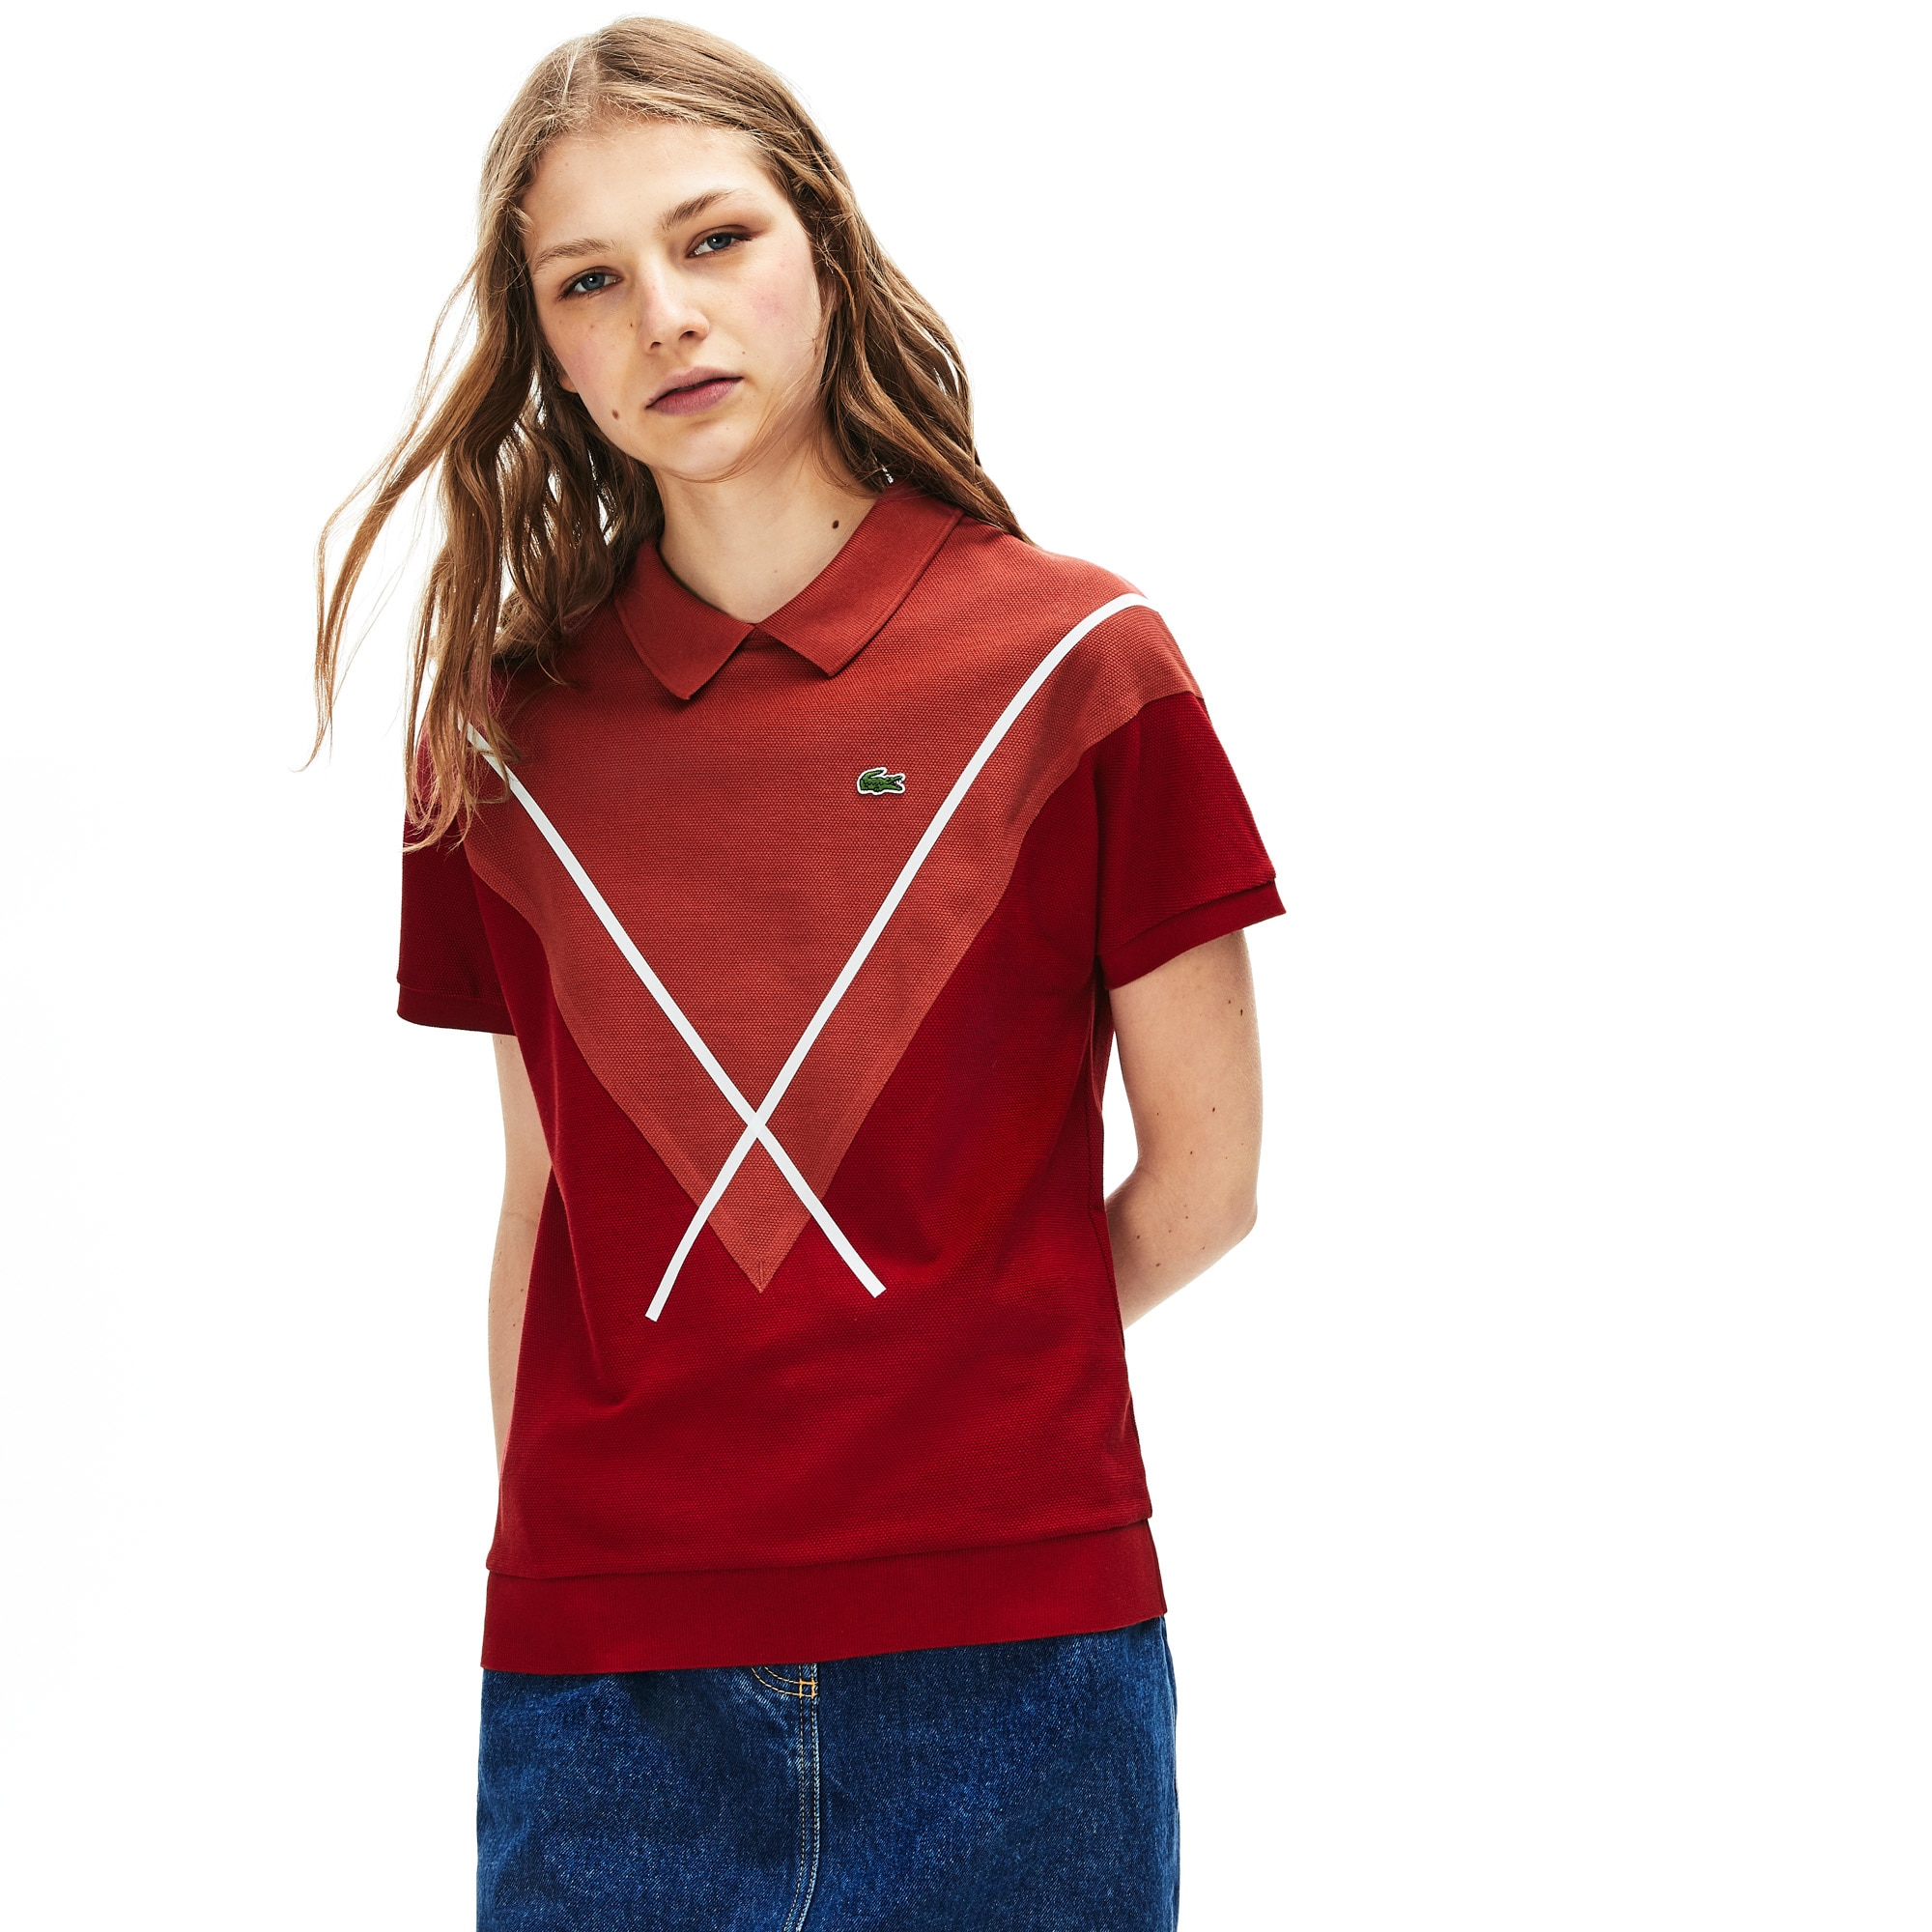 Women's Made In France Jacquard Piqué Polo Shirt